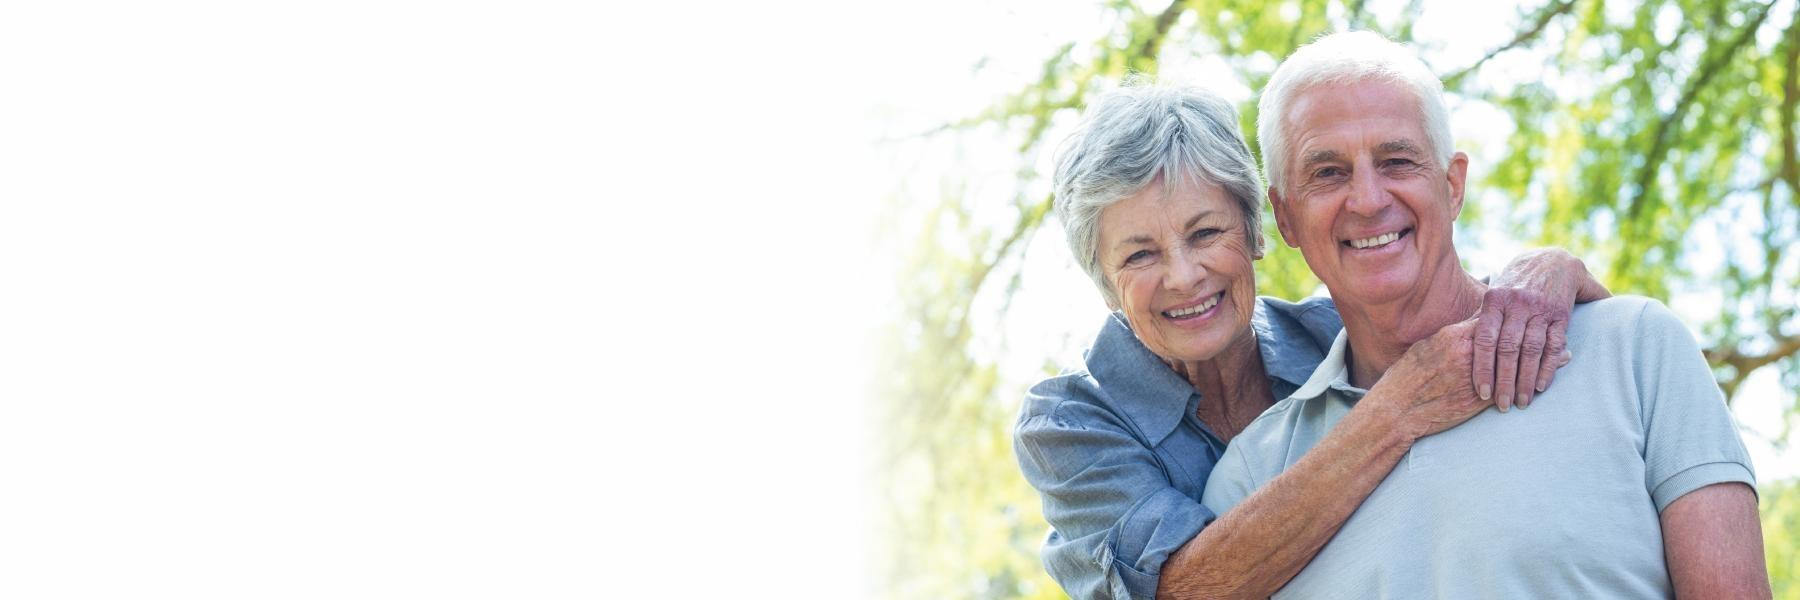 older couple smiling | Pascoe Vale Dental Implants